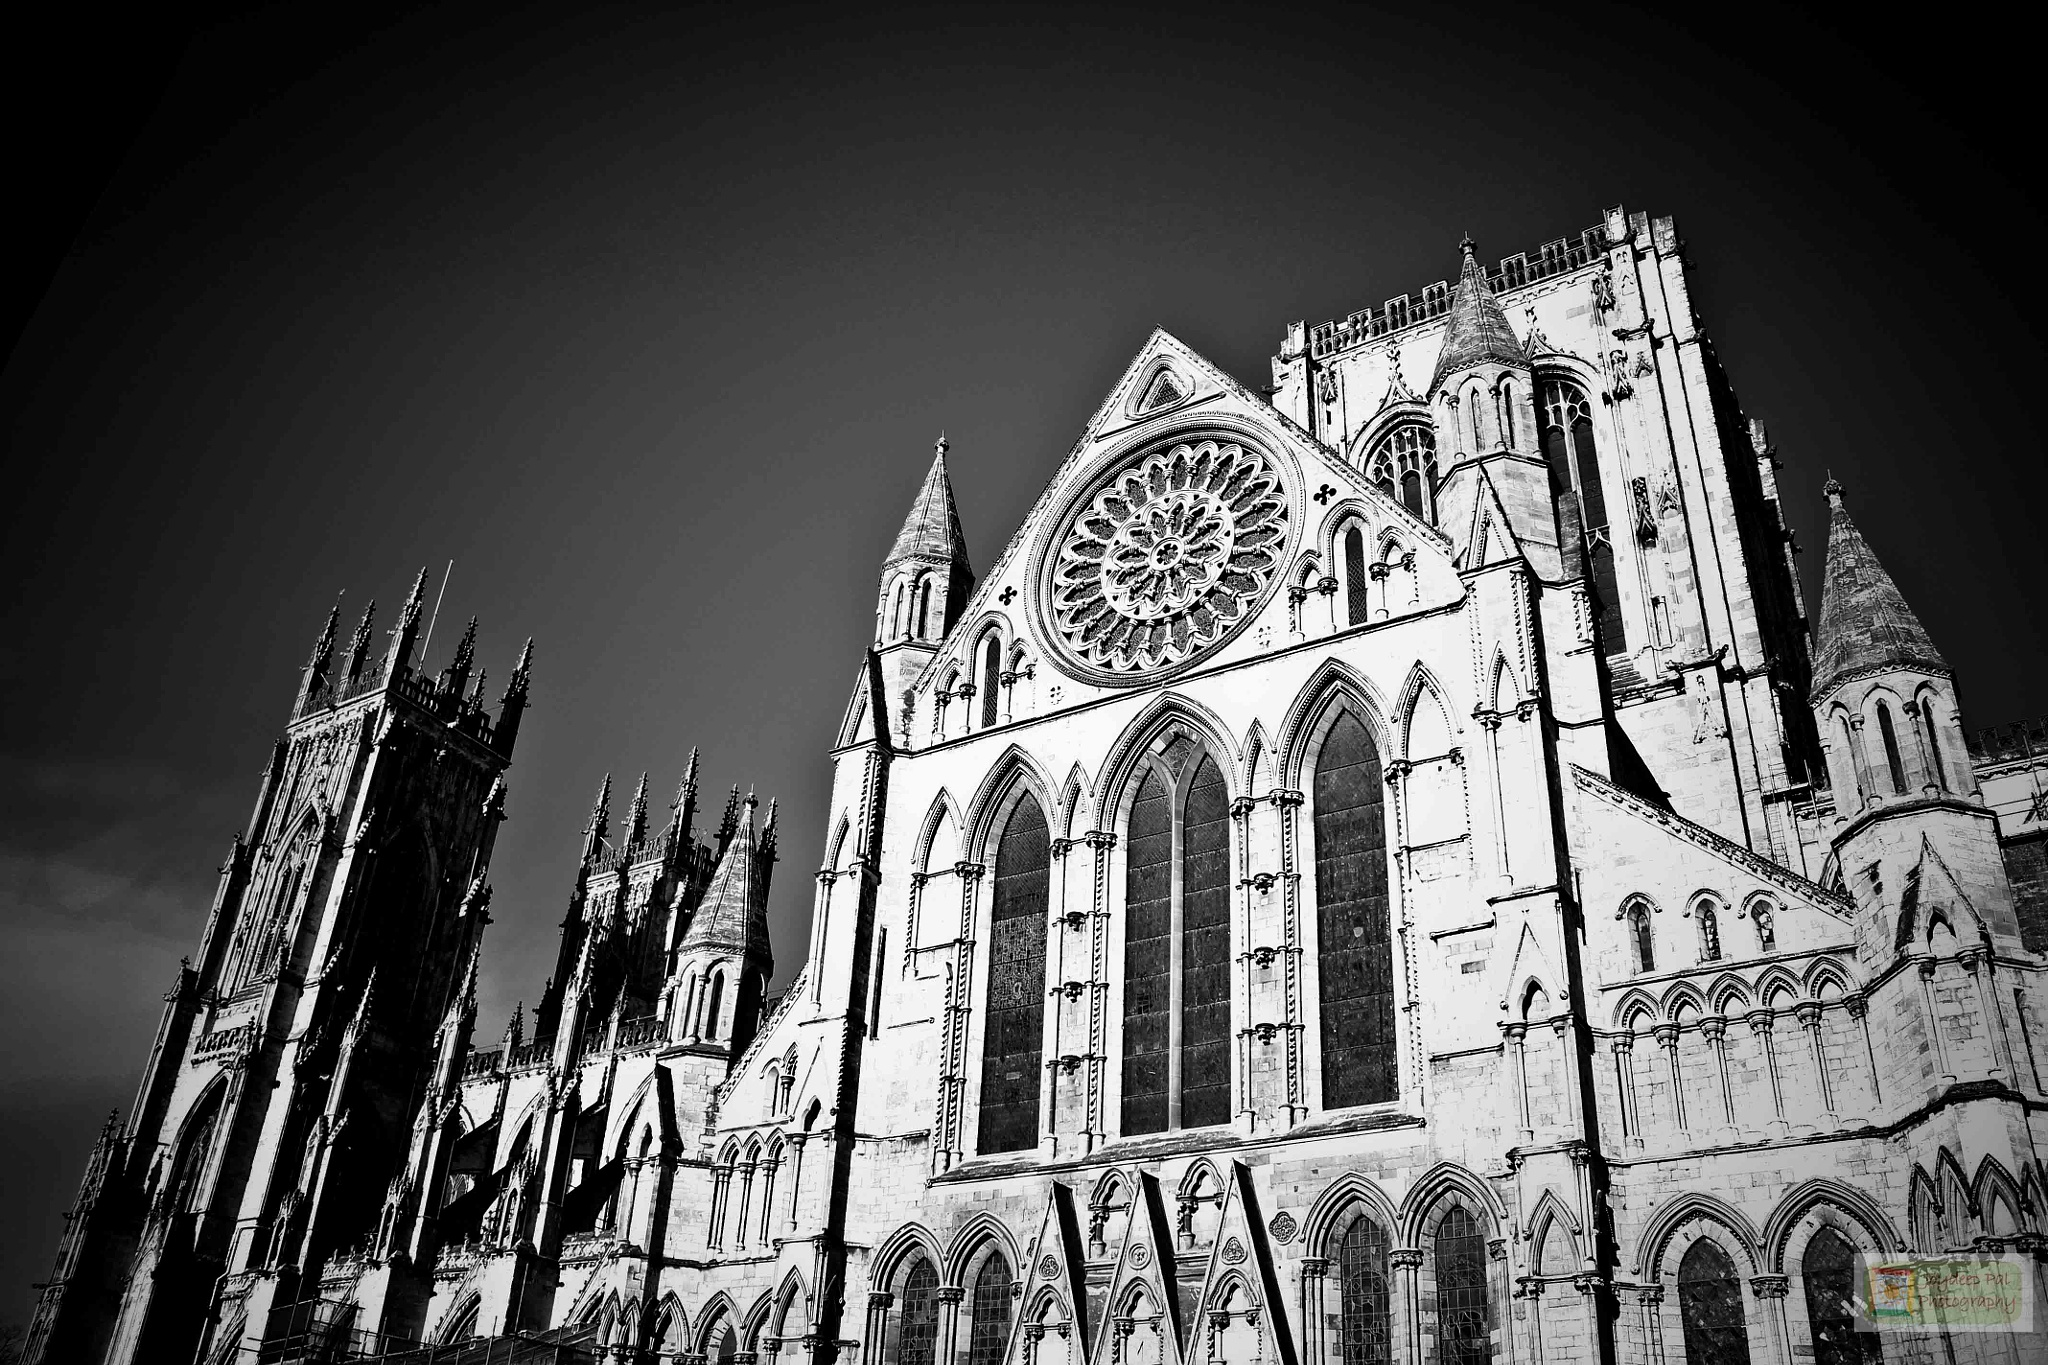 YorkMinster Cathedral by Joydeep Pal